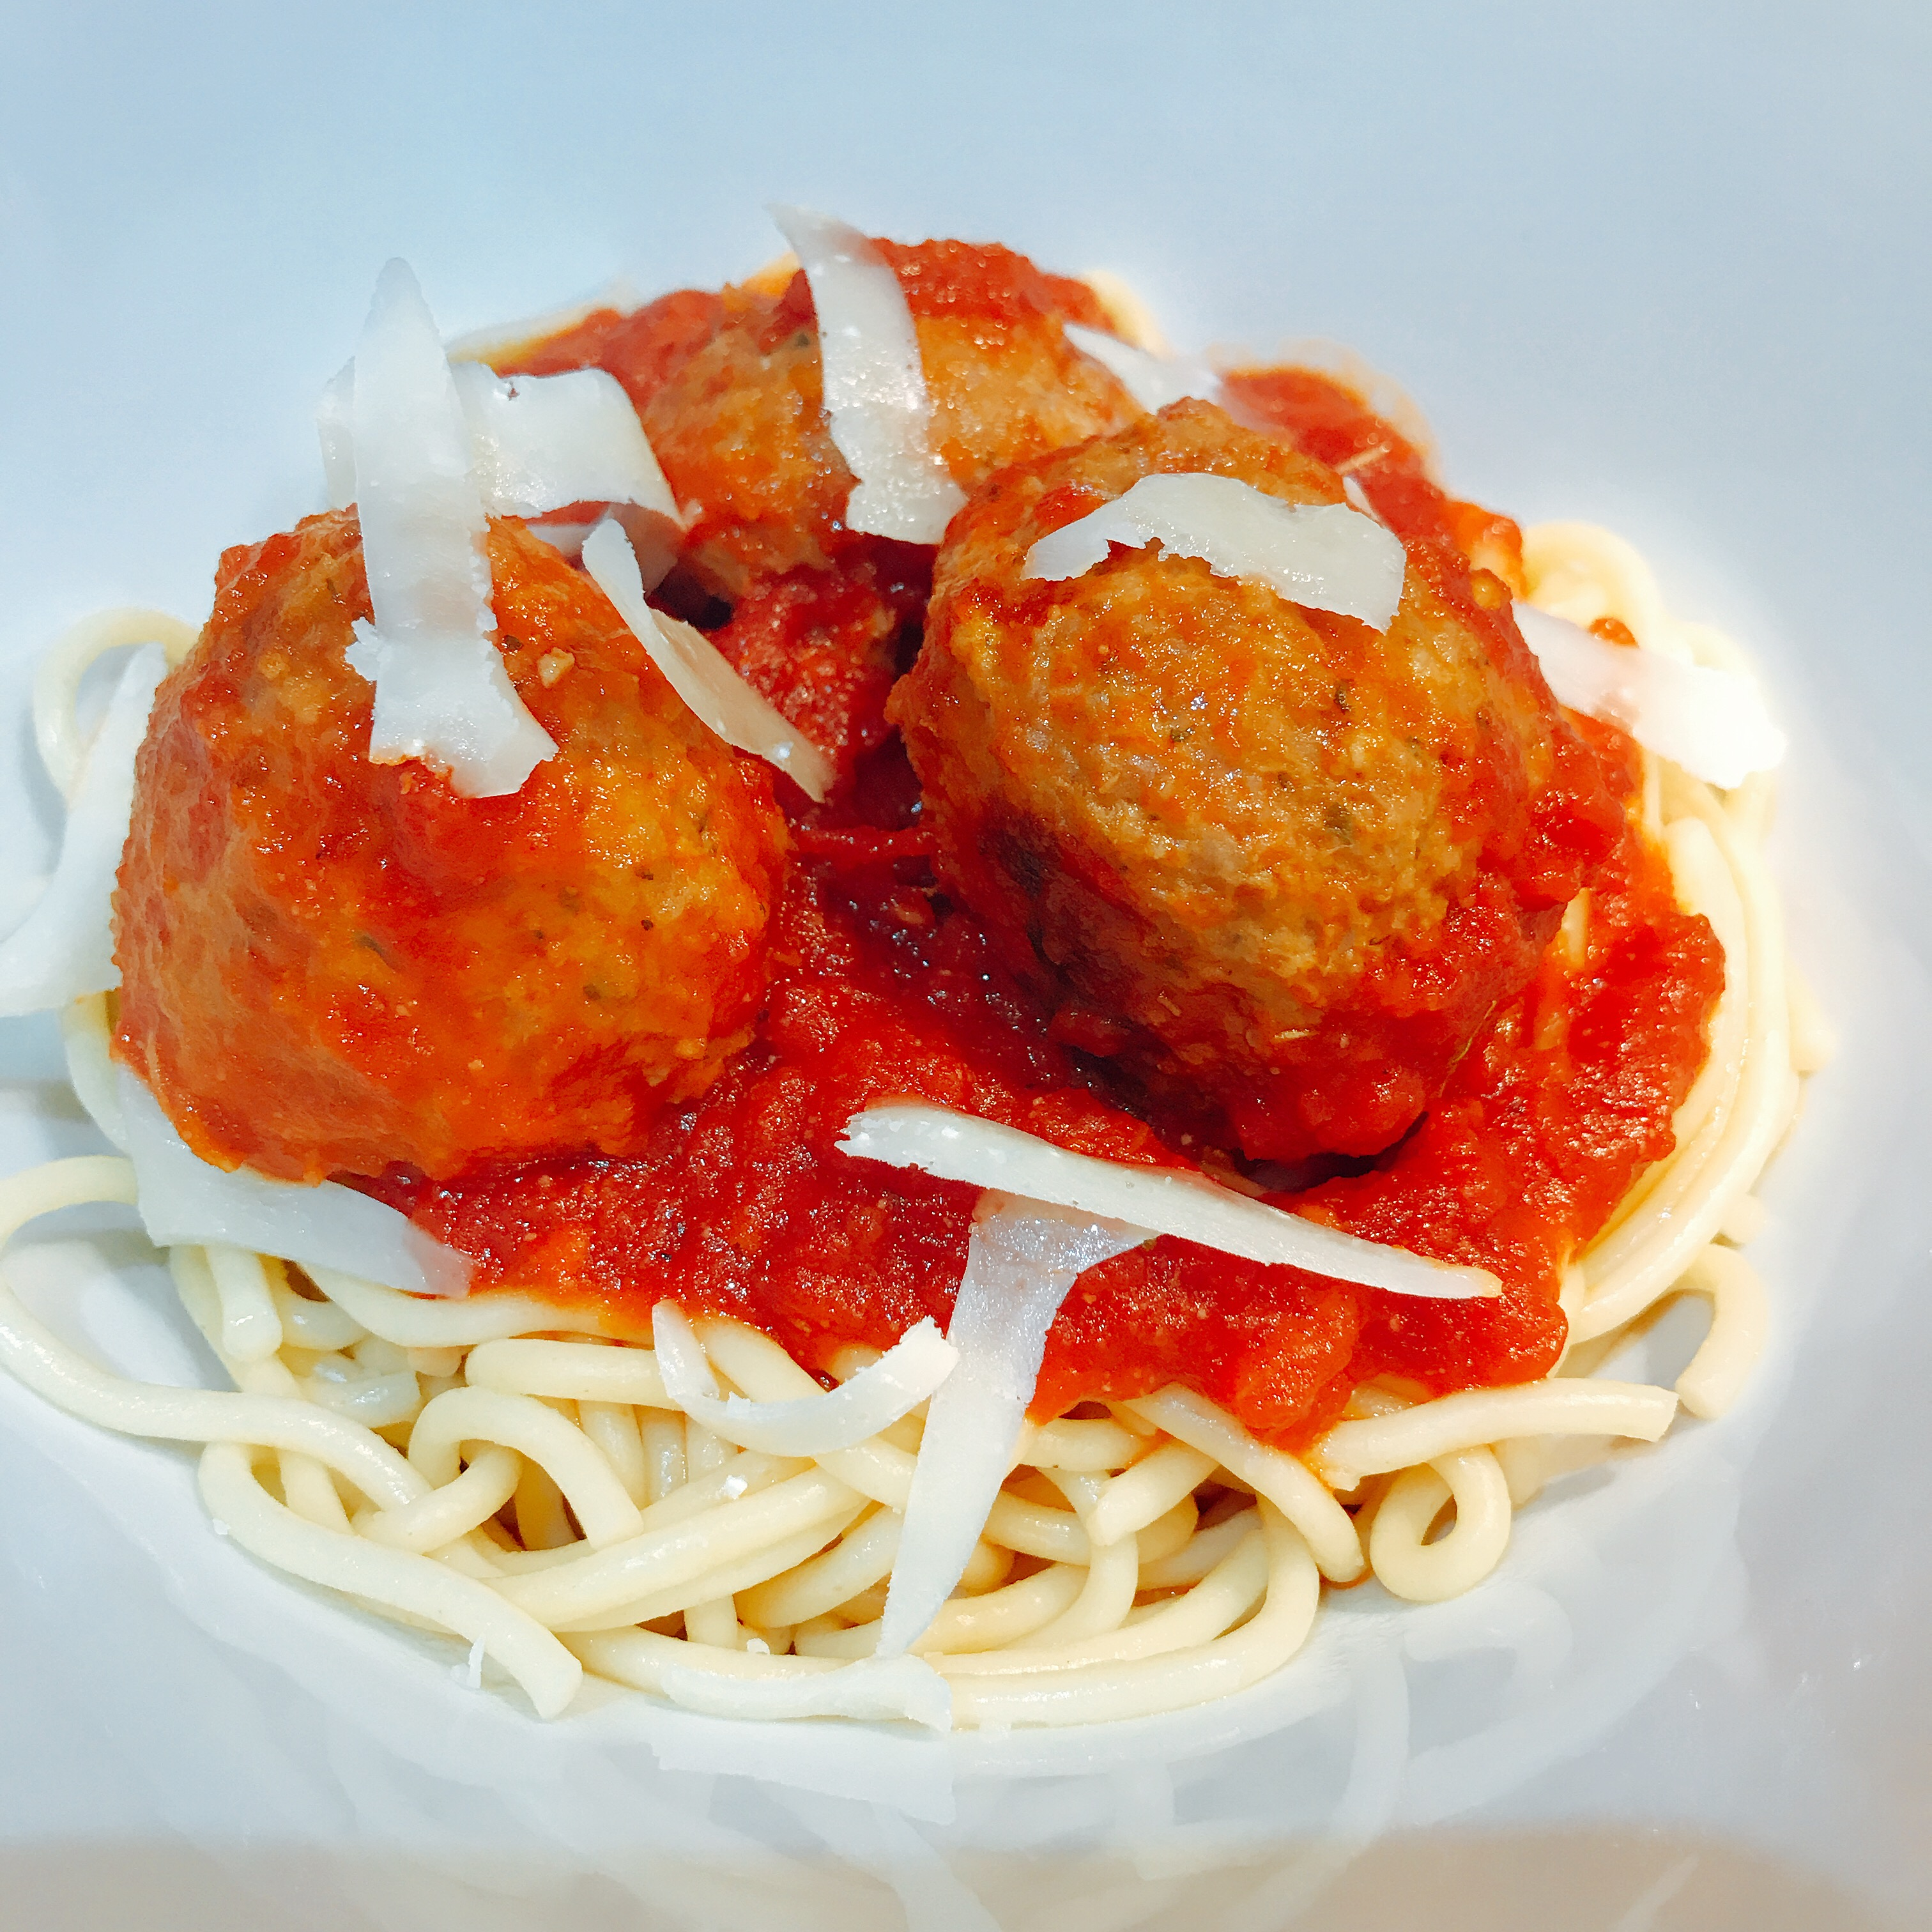 Spaghetti and Meatballs in the Instant Pot(R)